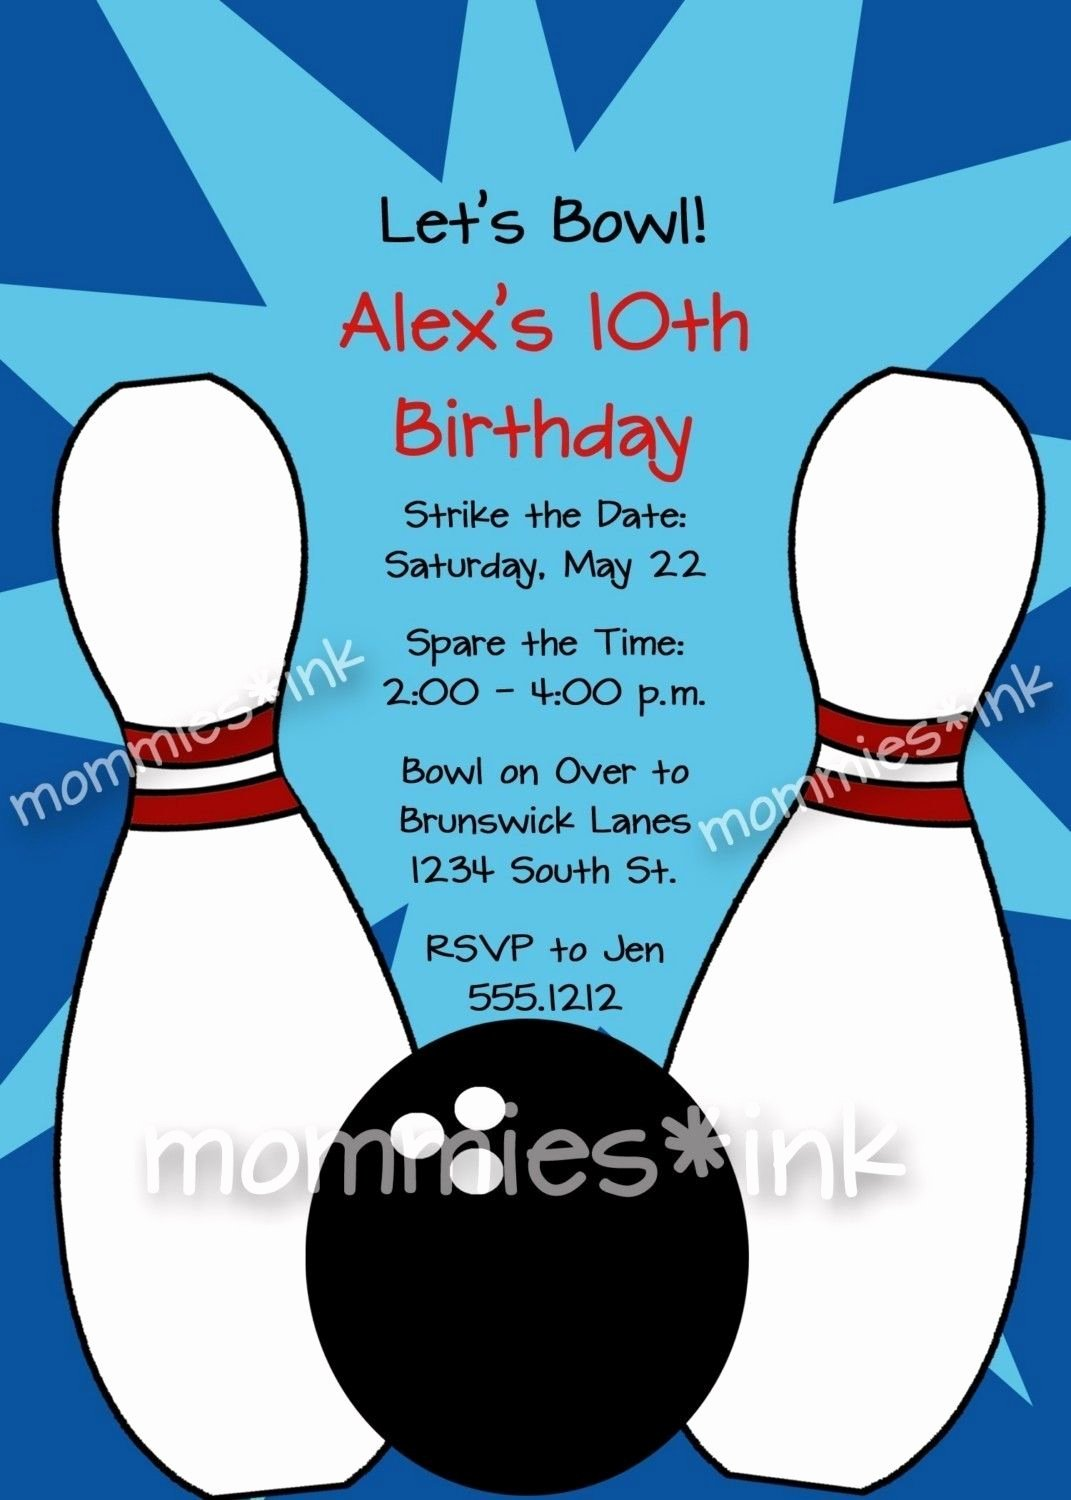 Free Bowling Invitation Template Lovely Free Bowling Party Invitations Templates with Blue